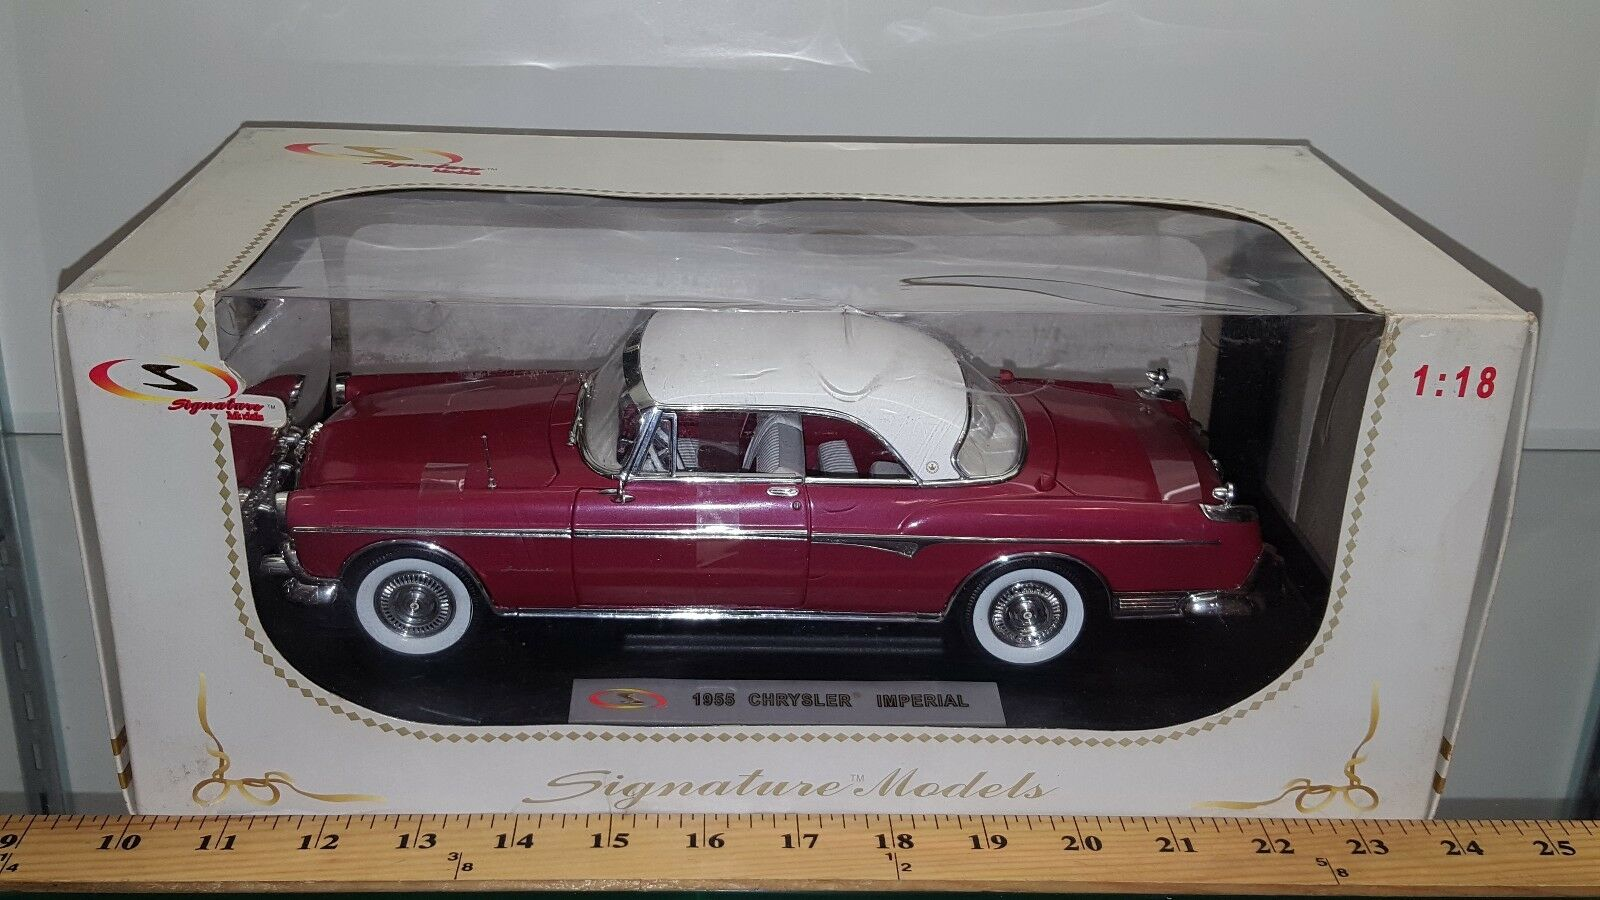 1 18 SIGNATURE MODELS 1955 CHRYSLER IMPERIAL DARK pink with WHITE TOP bd